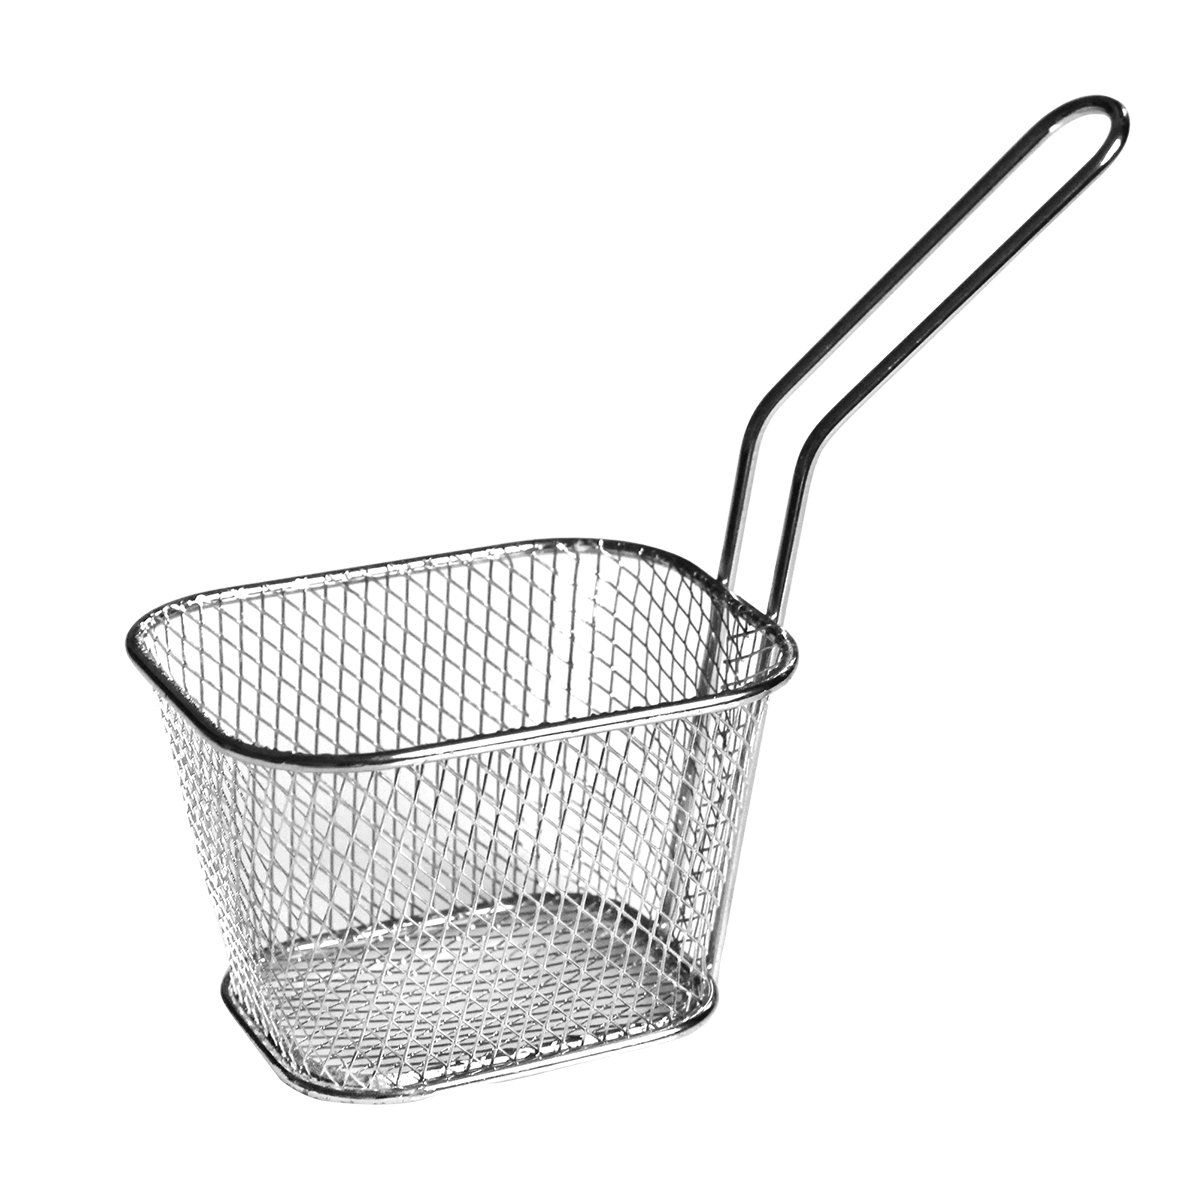 8pcs Mini Square Fry Basket Present Fried Food, Table Serving Mini Chip Baskets Mini Fryer Serving Food Presentation Basket Kitchen